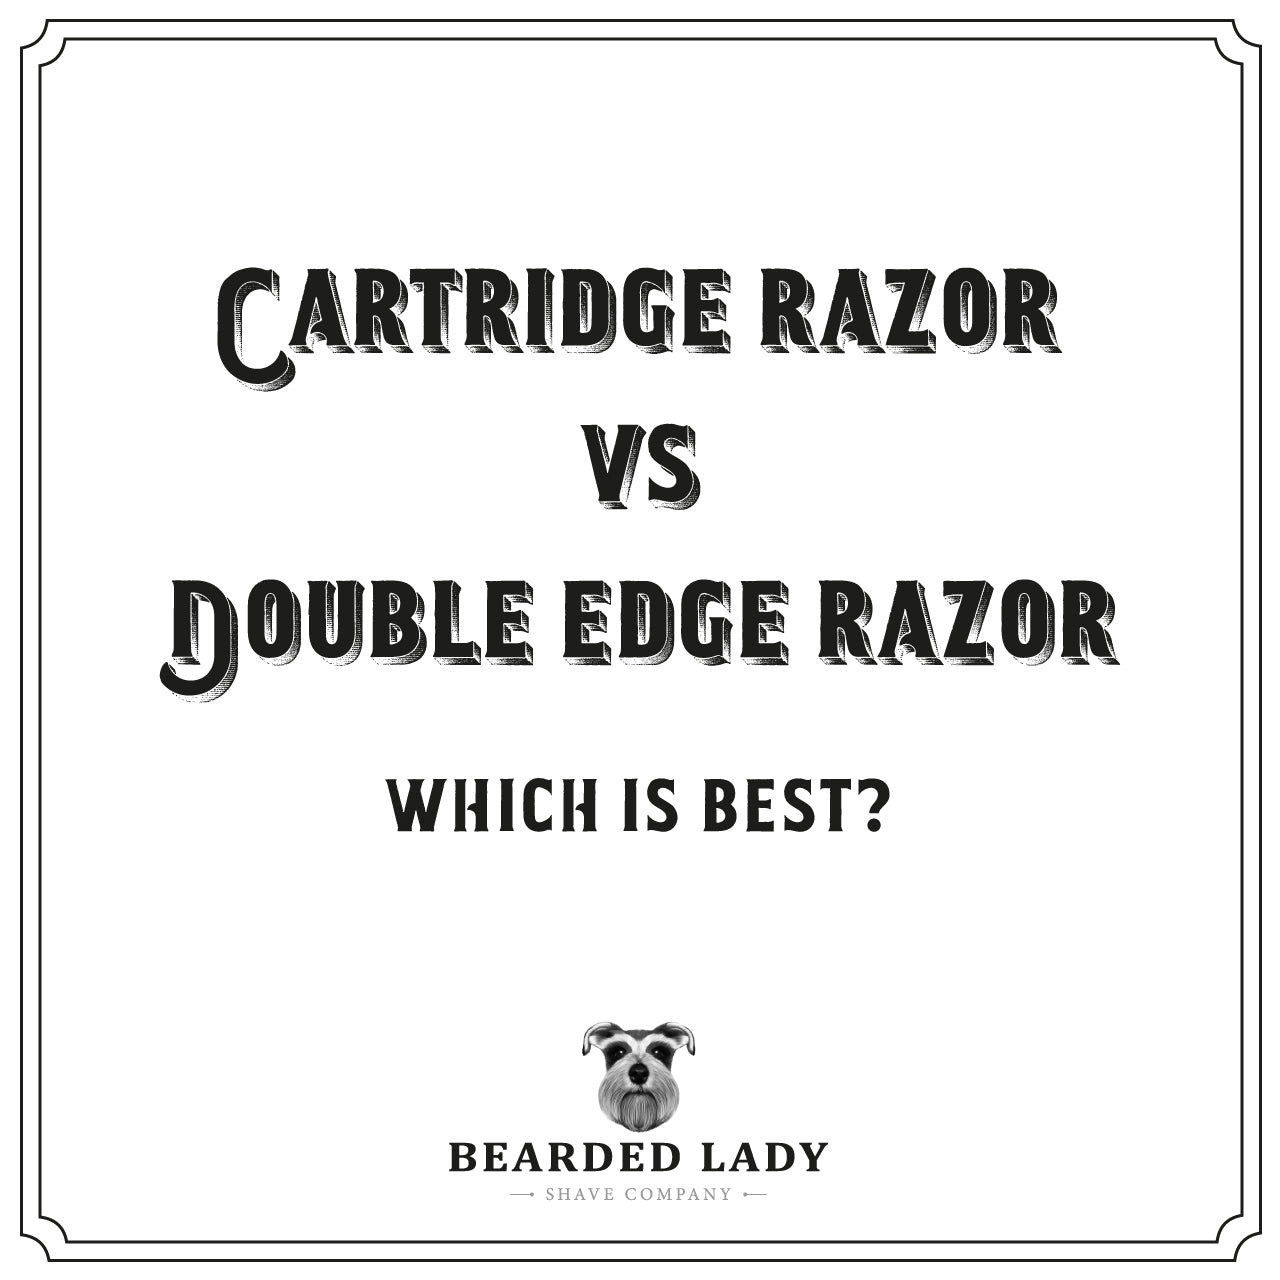 Cartridge Razor vs Double Edge Razor: Which Is Better?